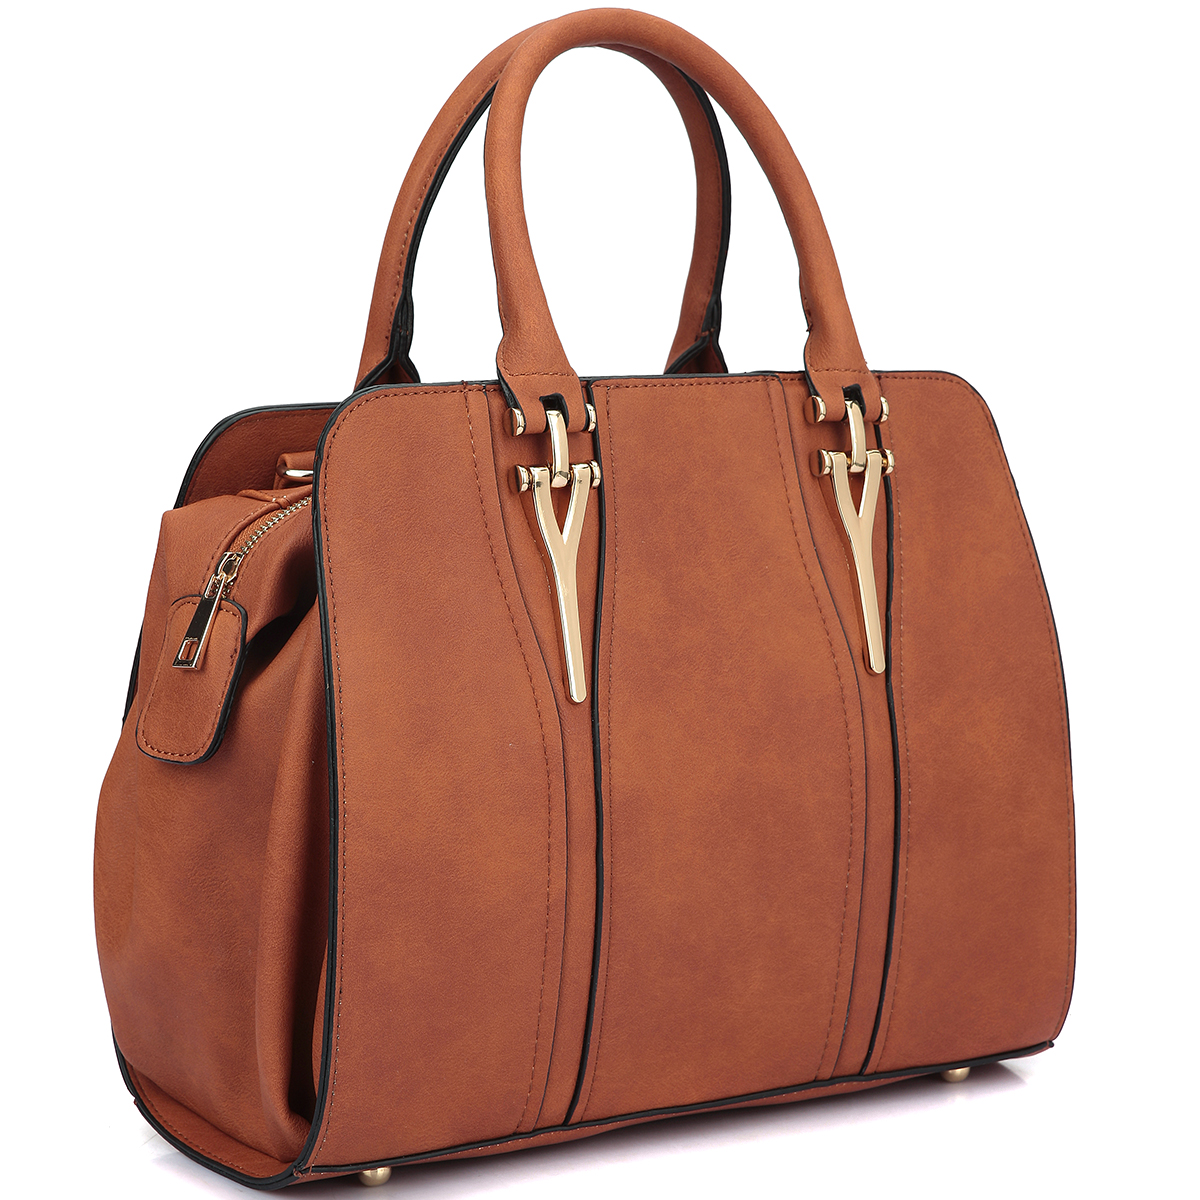 Dasein Faux Leather Medium Satchel Shoulder Bag